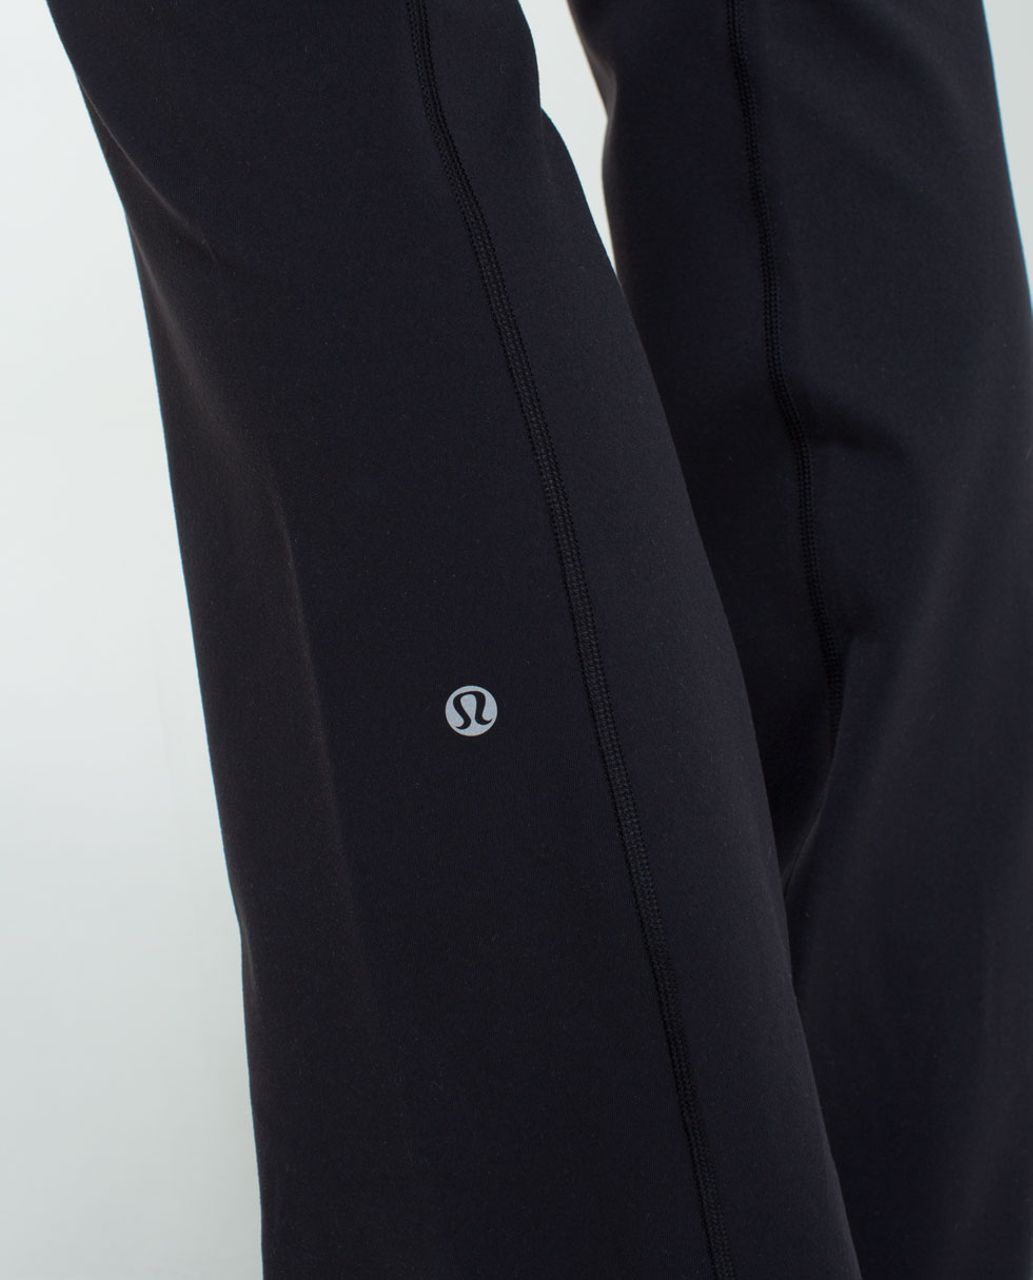 Lululemon Groove Pant (Tall) *Full-On Luon - Black / Quilt Spring 14-10